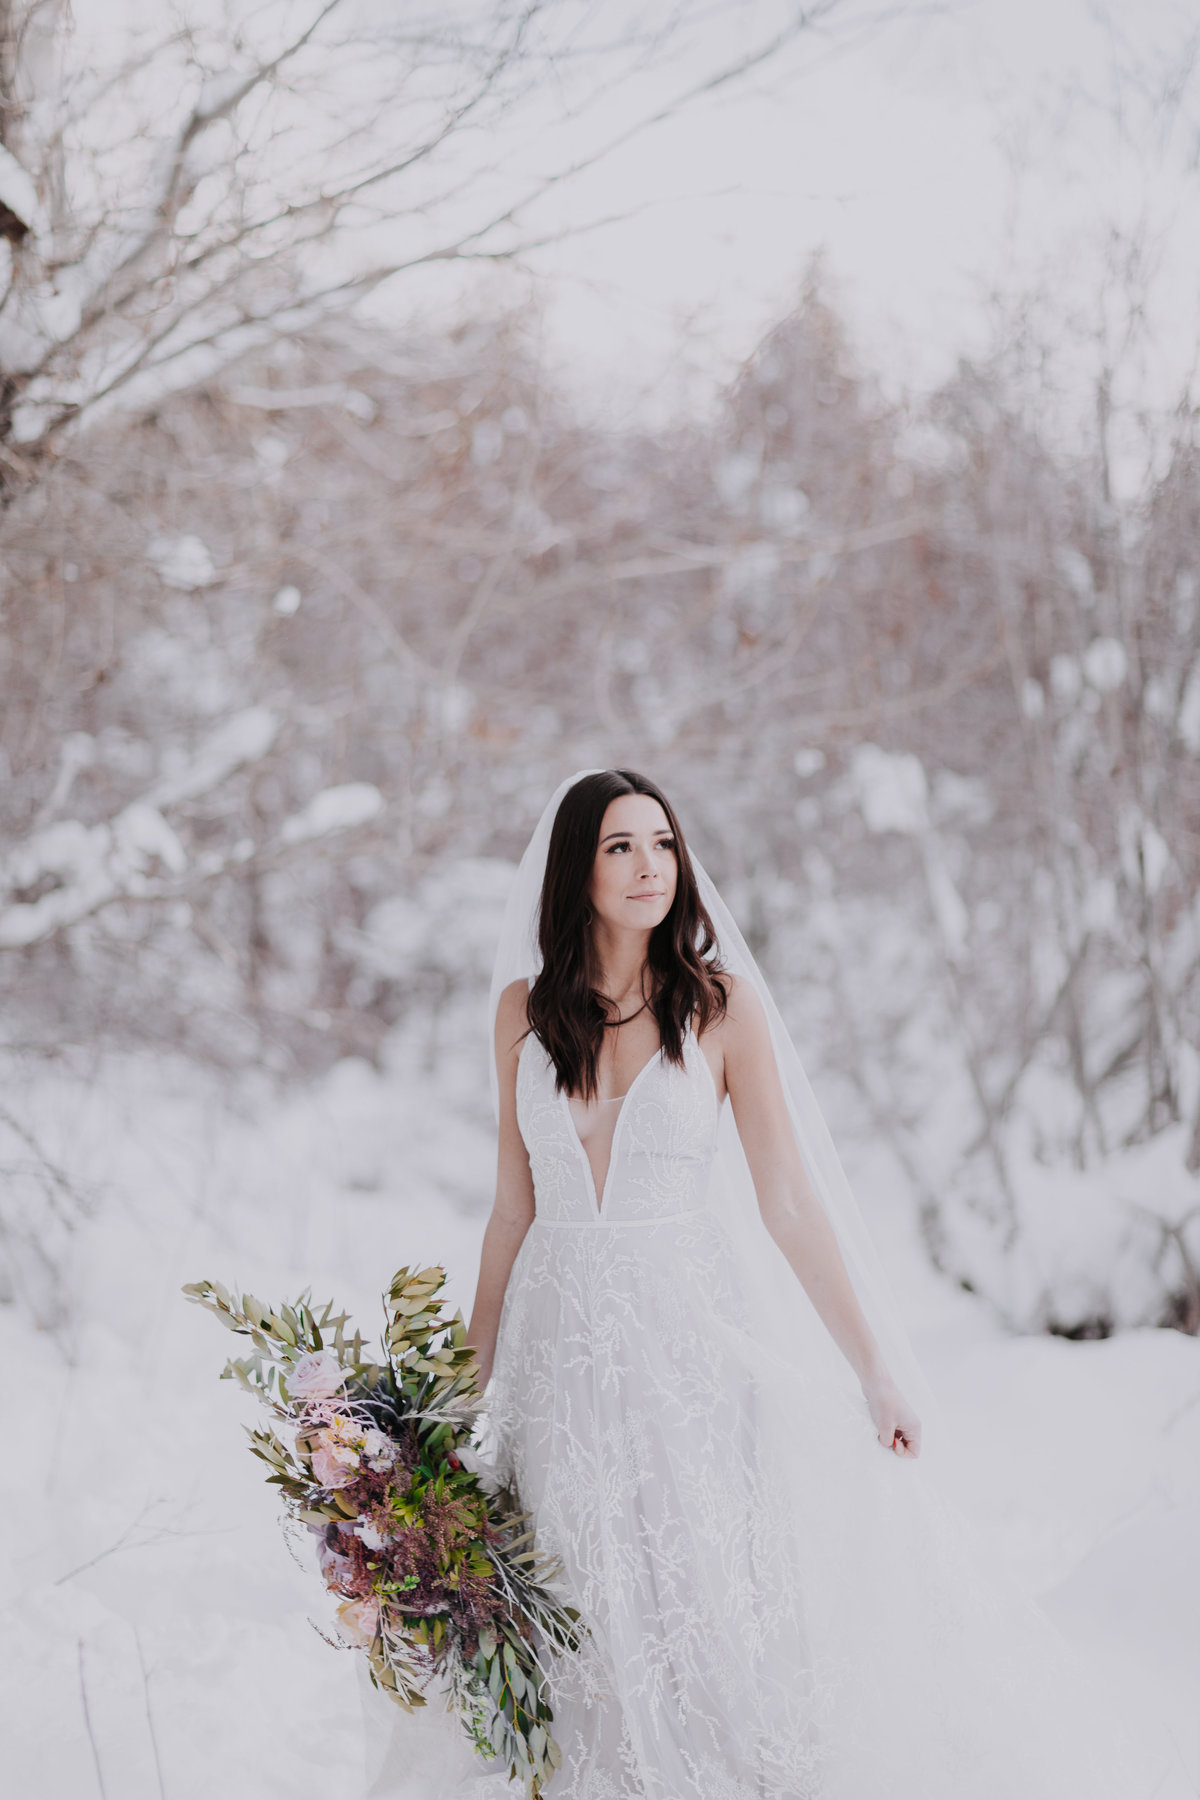 Crystal Peak Park Reno wedding pictures bride poses in snow with bouquet